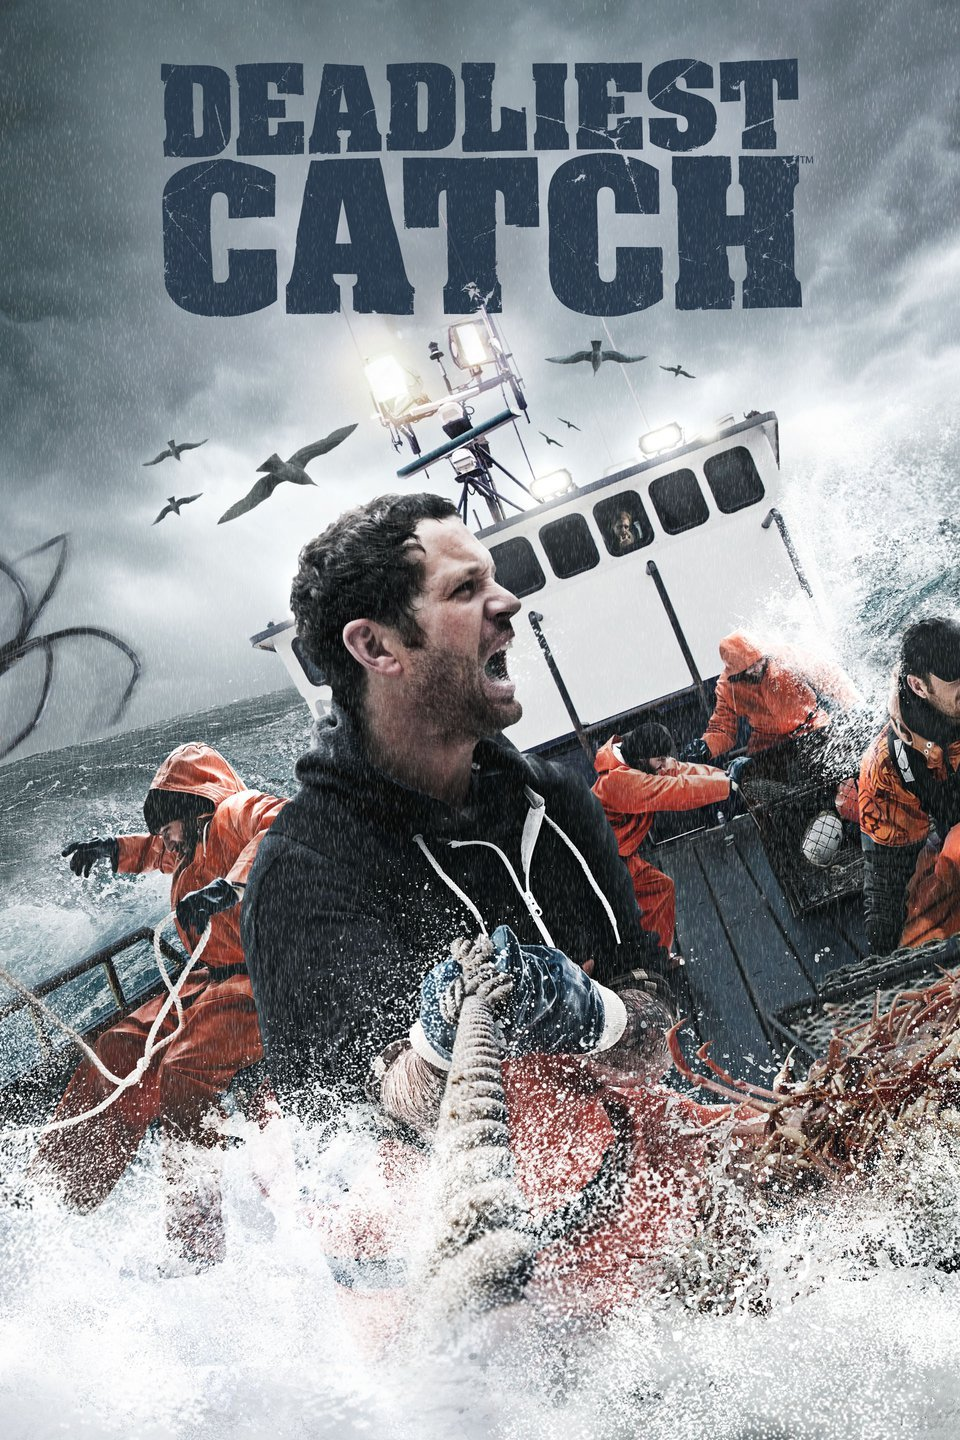 Deadliest Catch Season 15 Will Have a New Look   One World